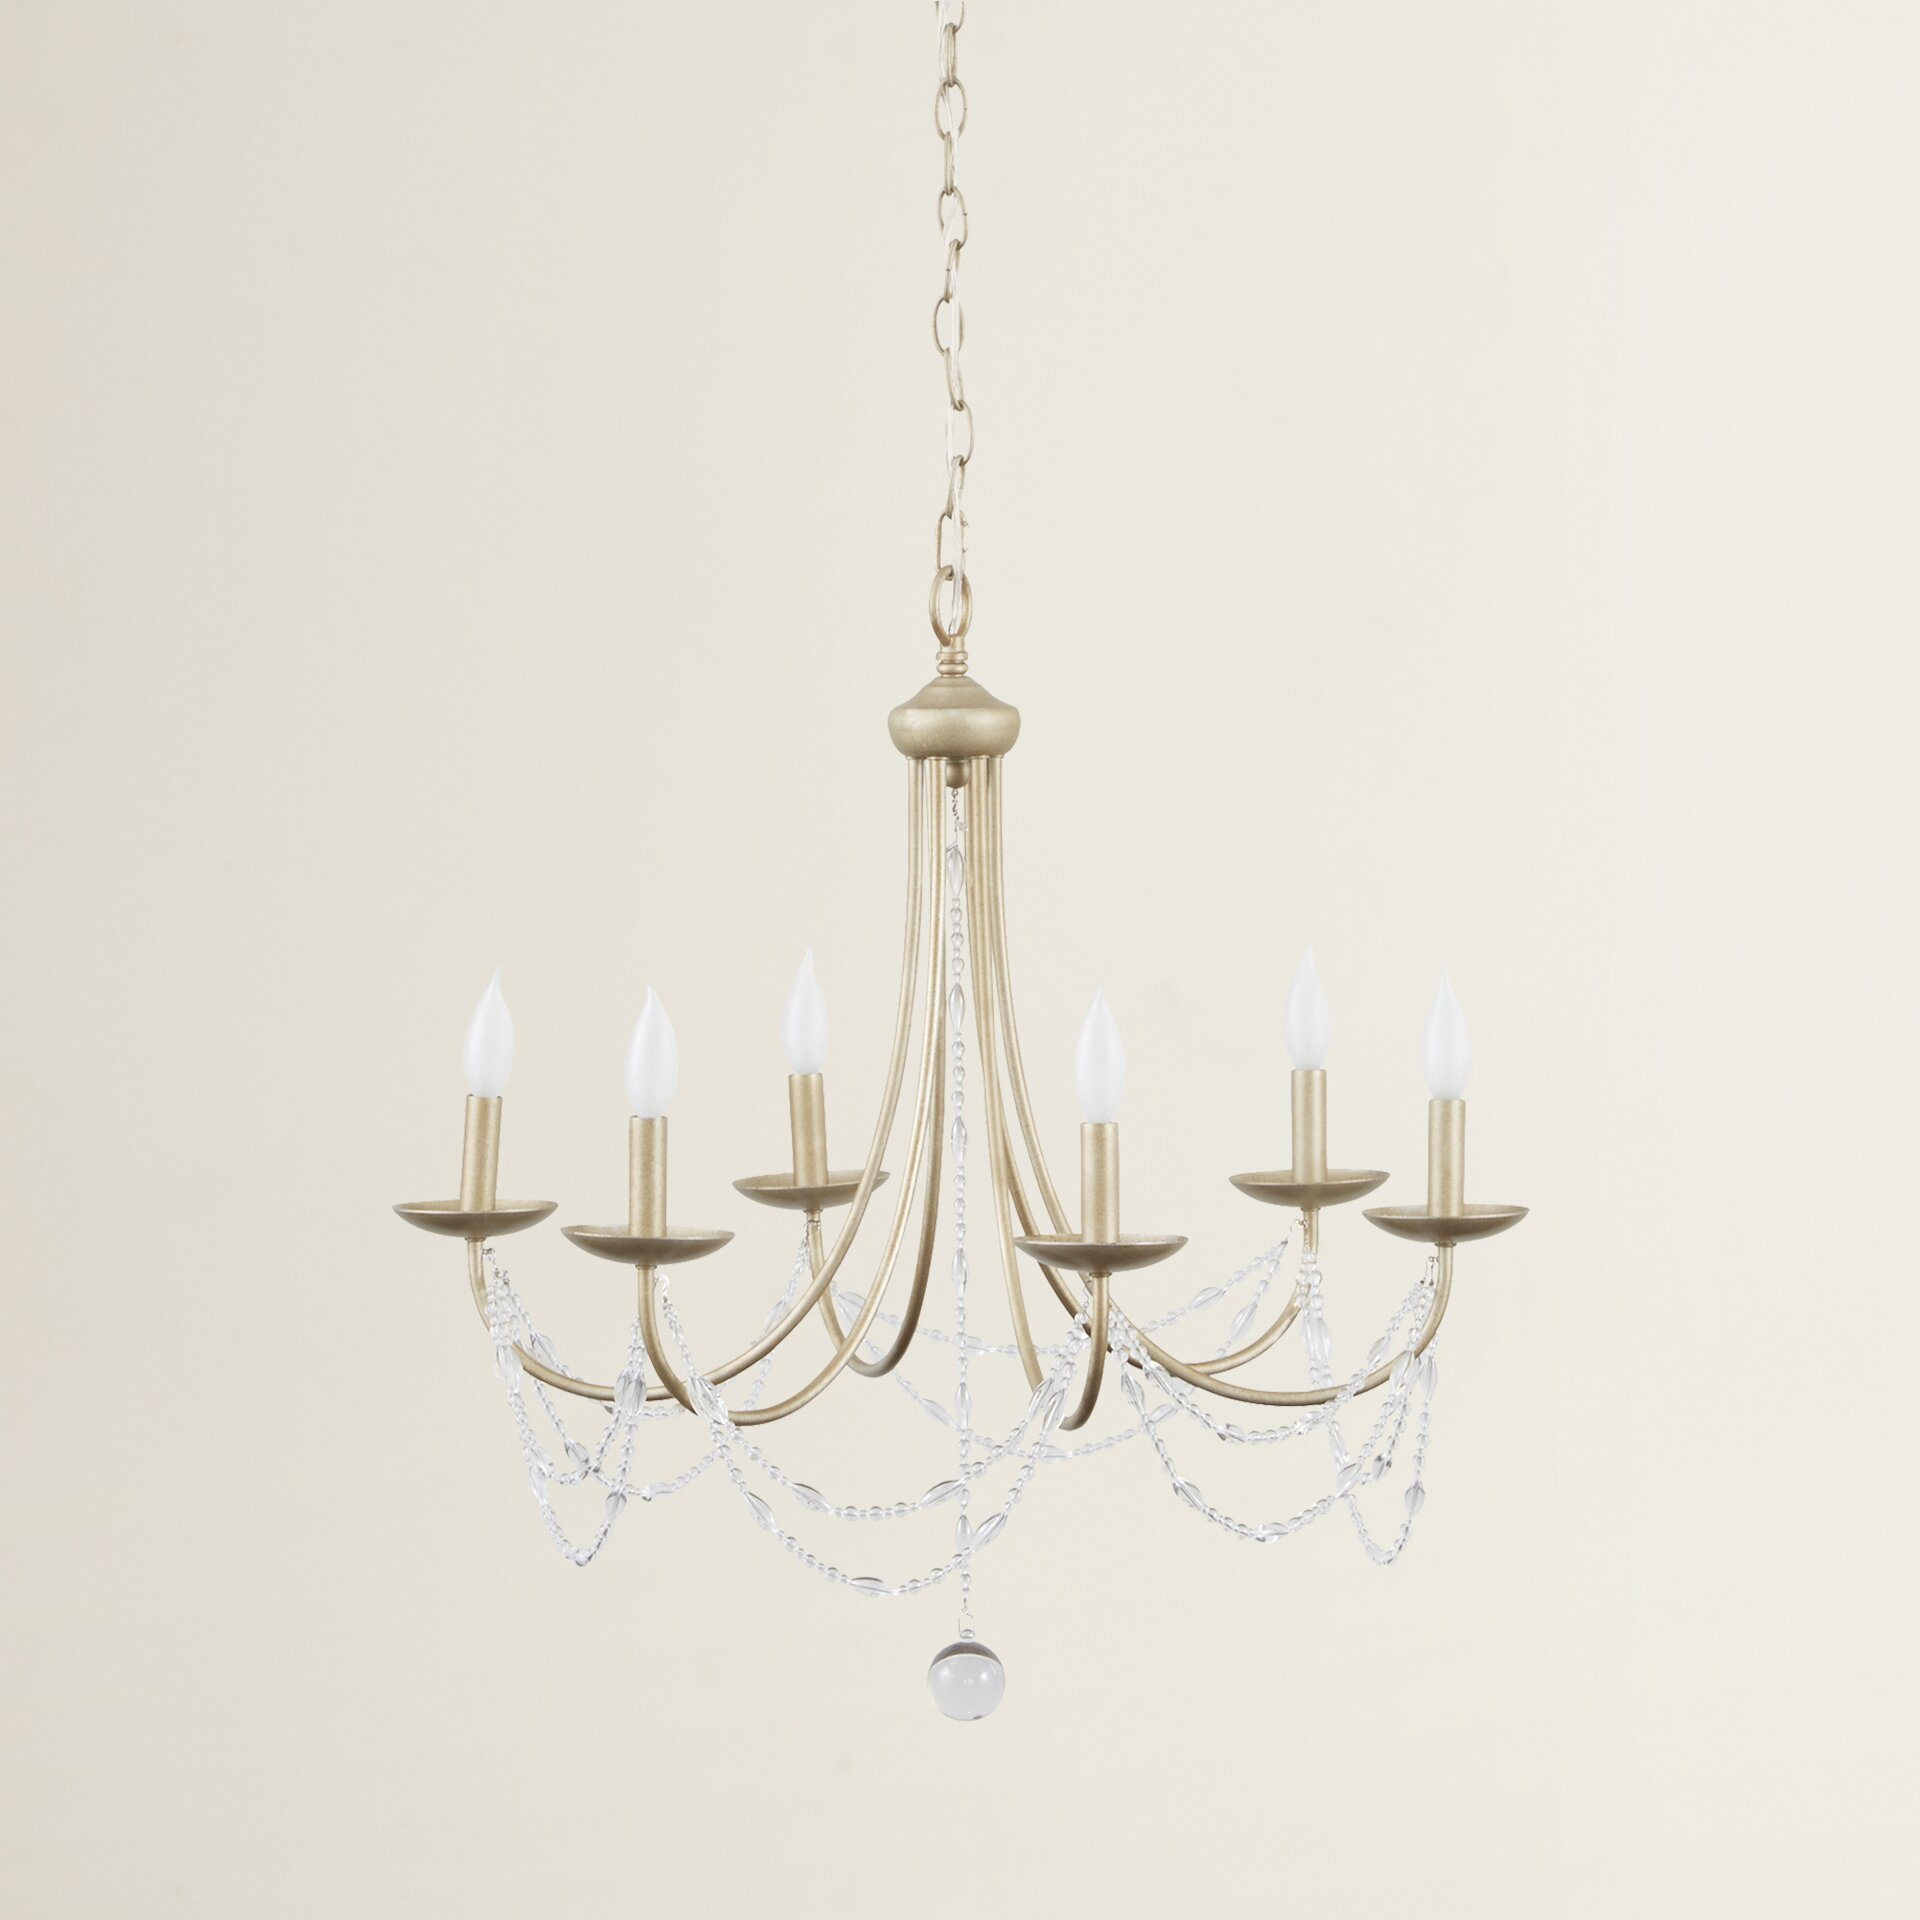 Three Posts Atwood 6 Light Candle Style Chandelier